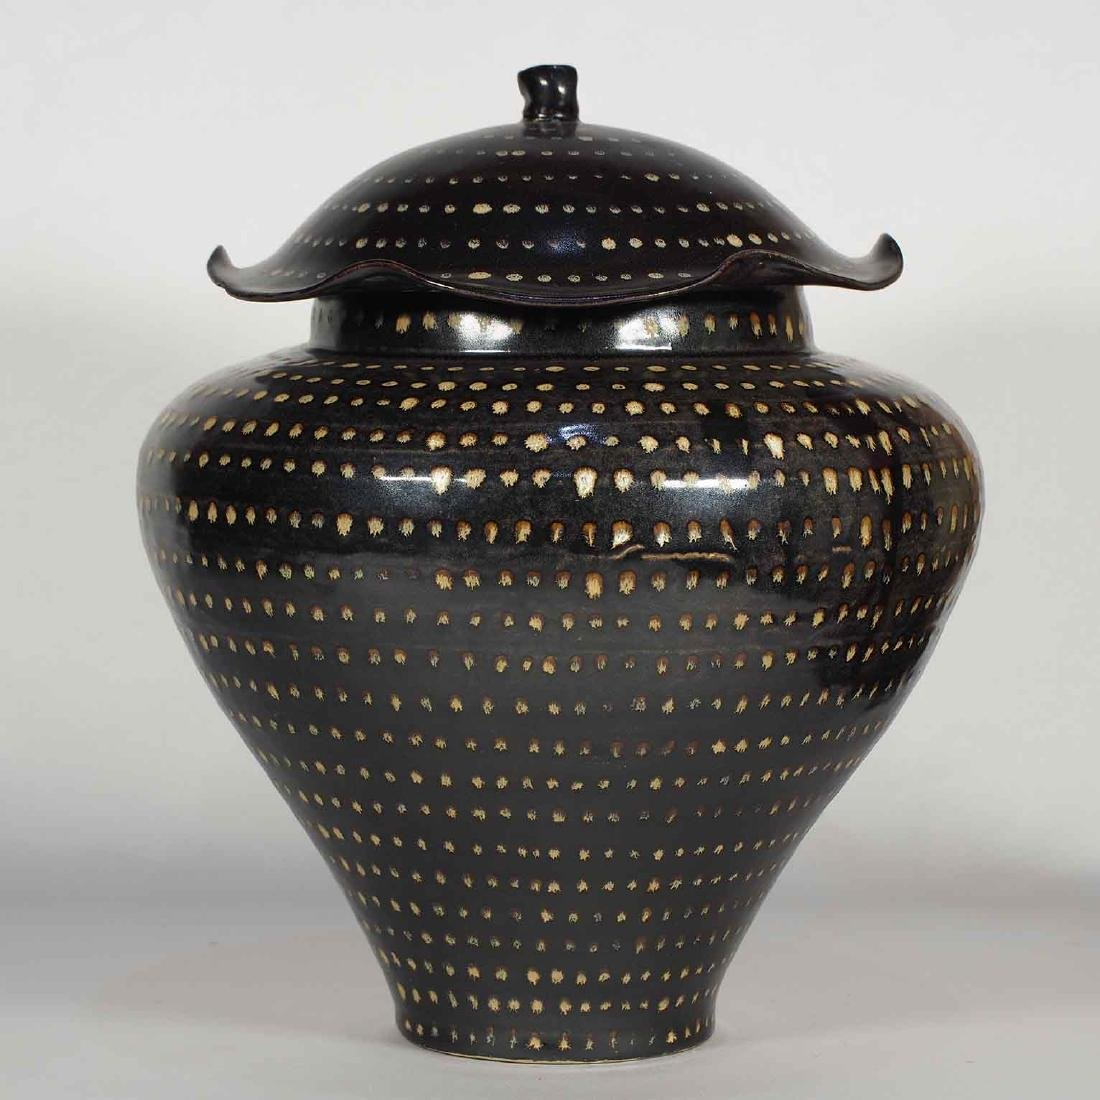 Jizhou Dotted Jar with Lid, Southern Song Dynasty - 2